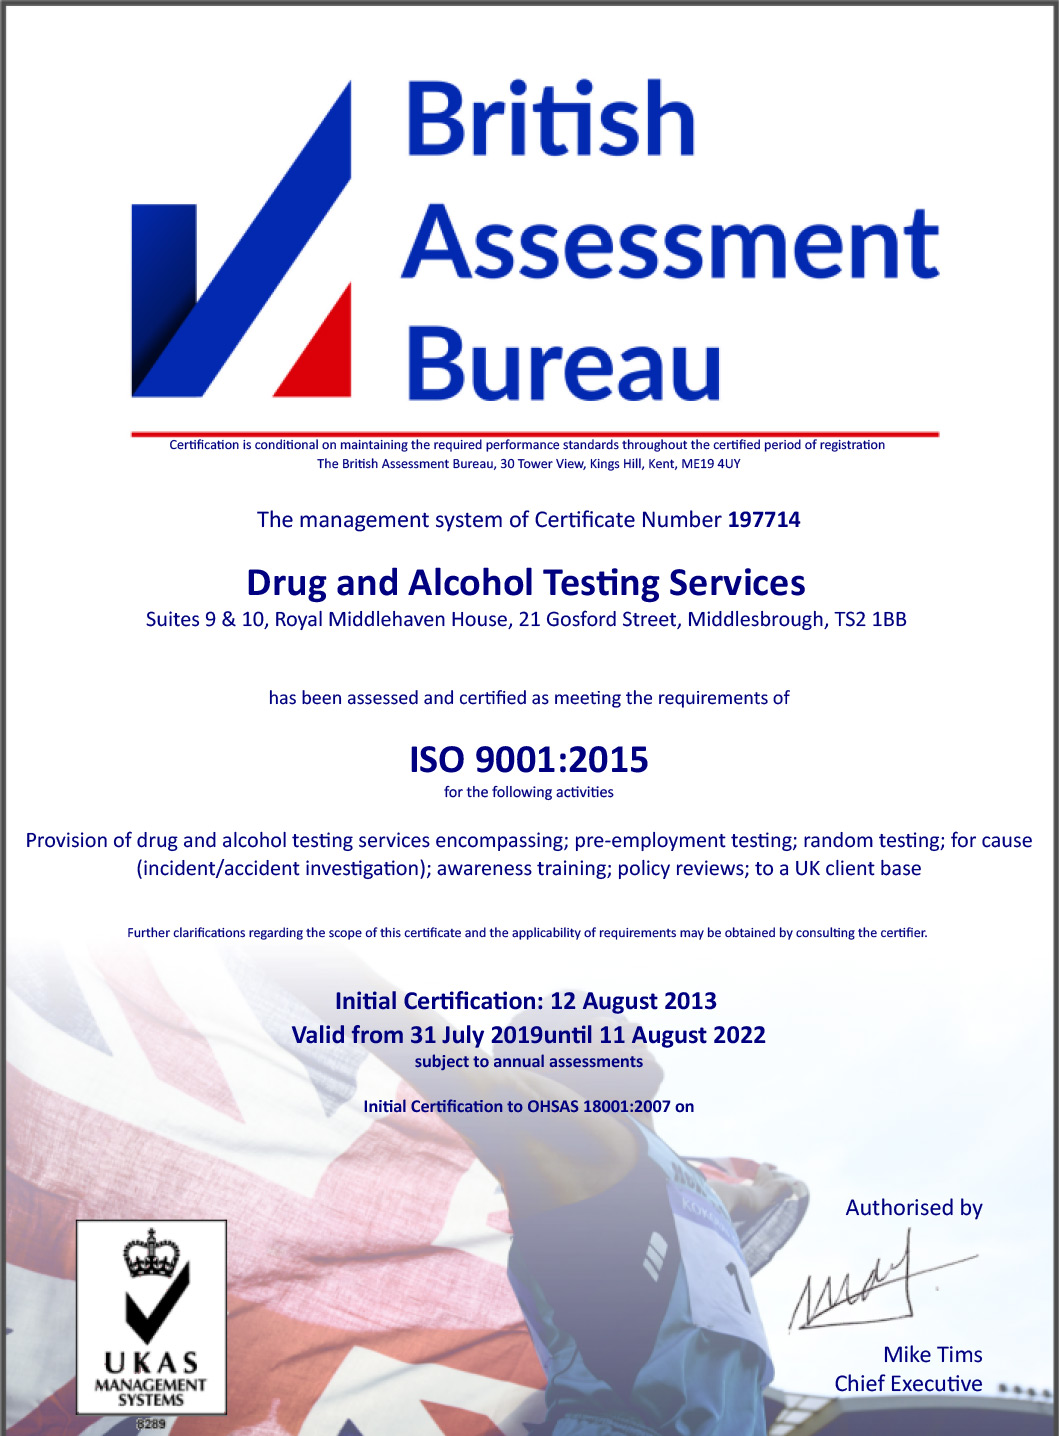 Drug-and-Alcohol-Testing-9001-cert